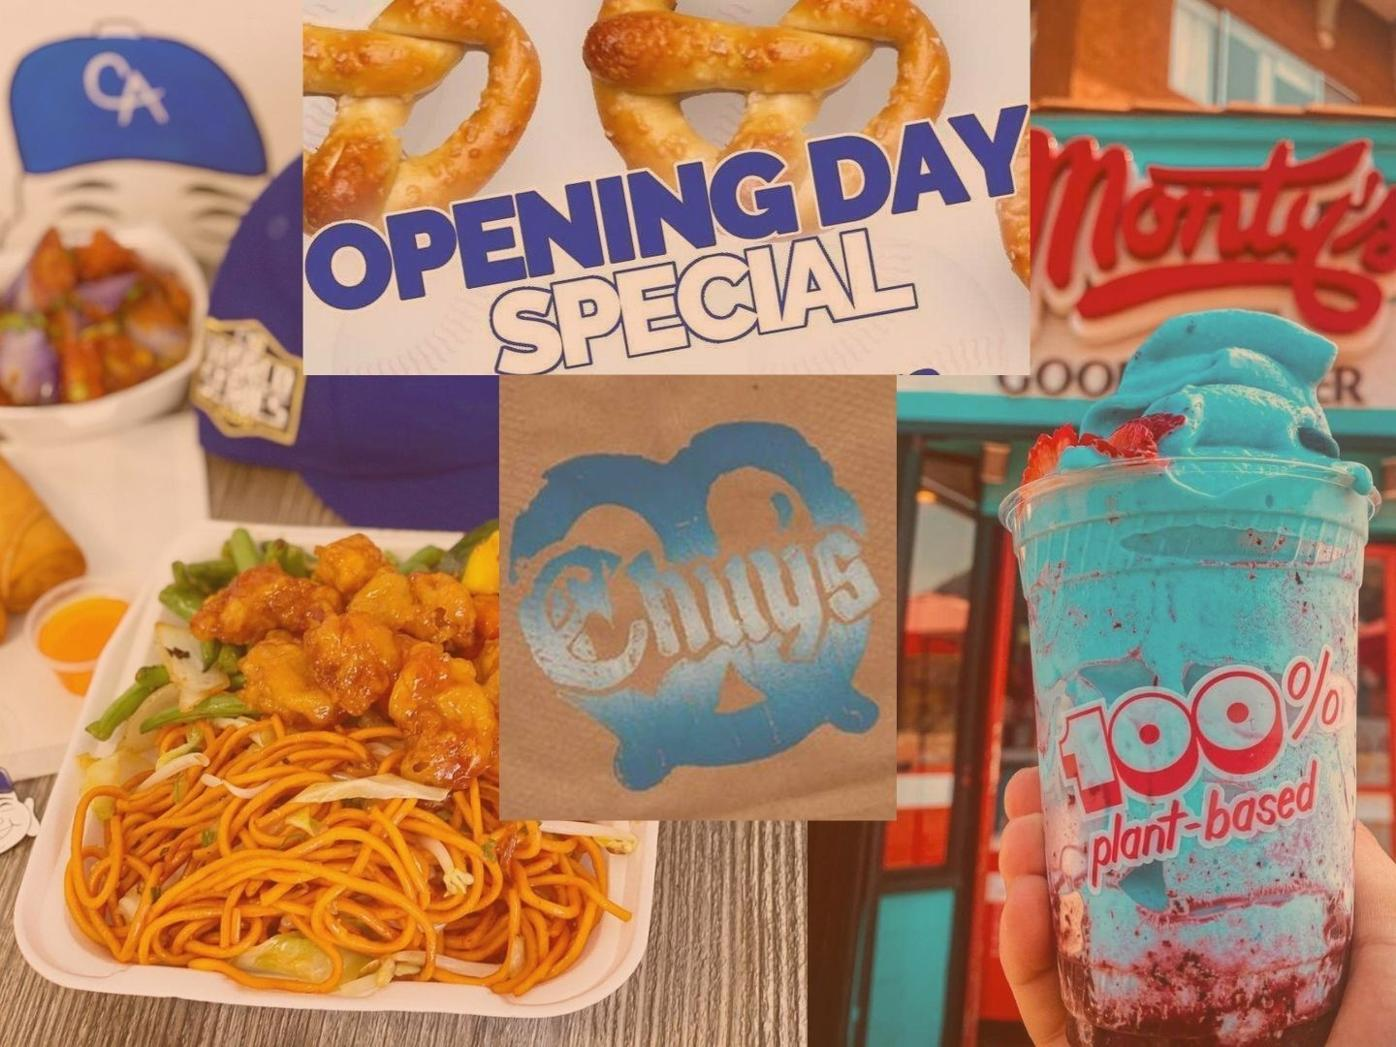 Dodgers' Opening Day Specials